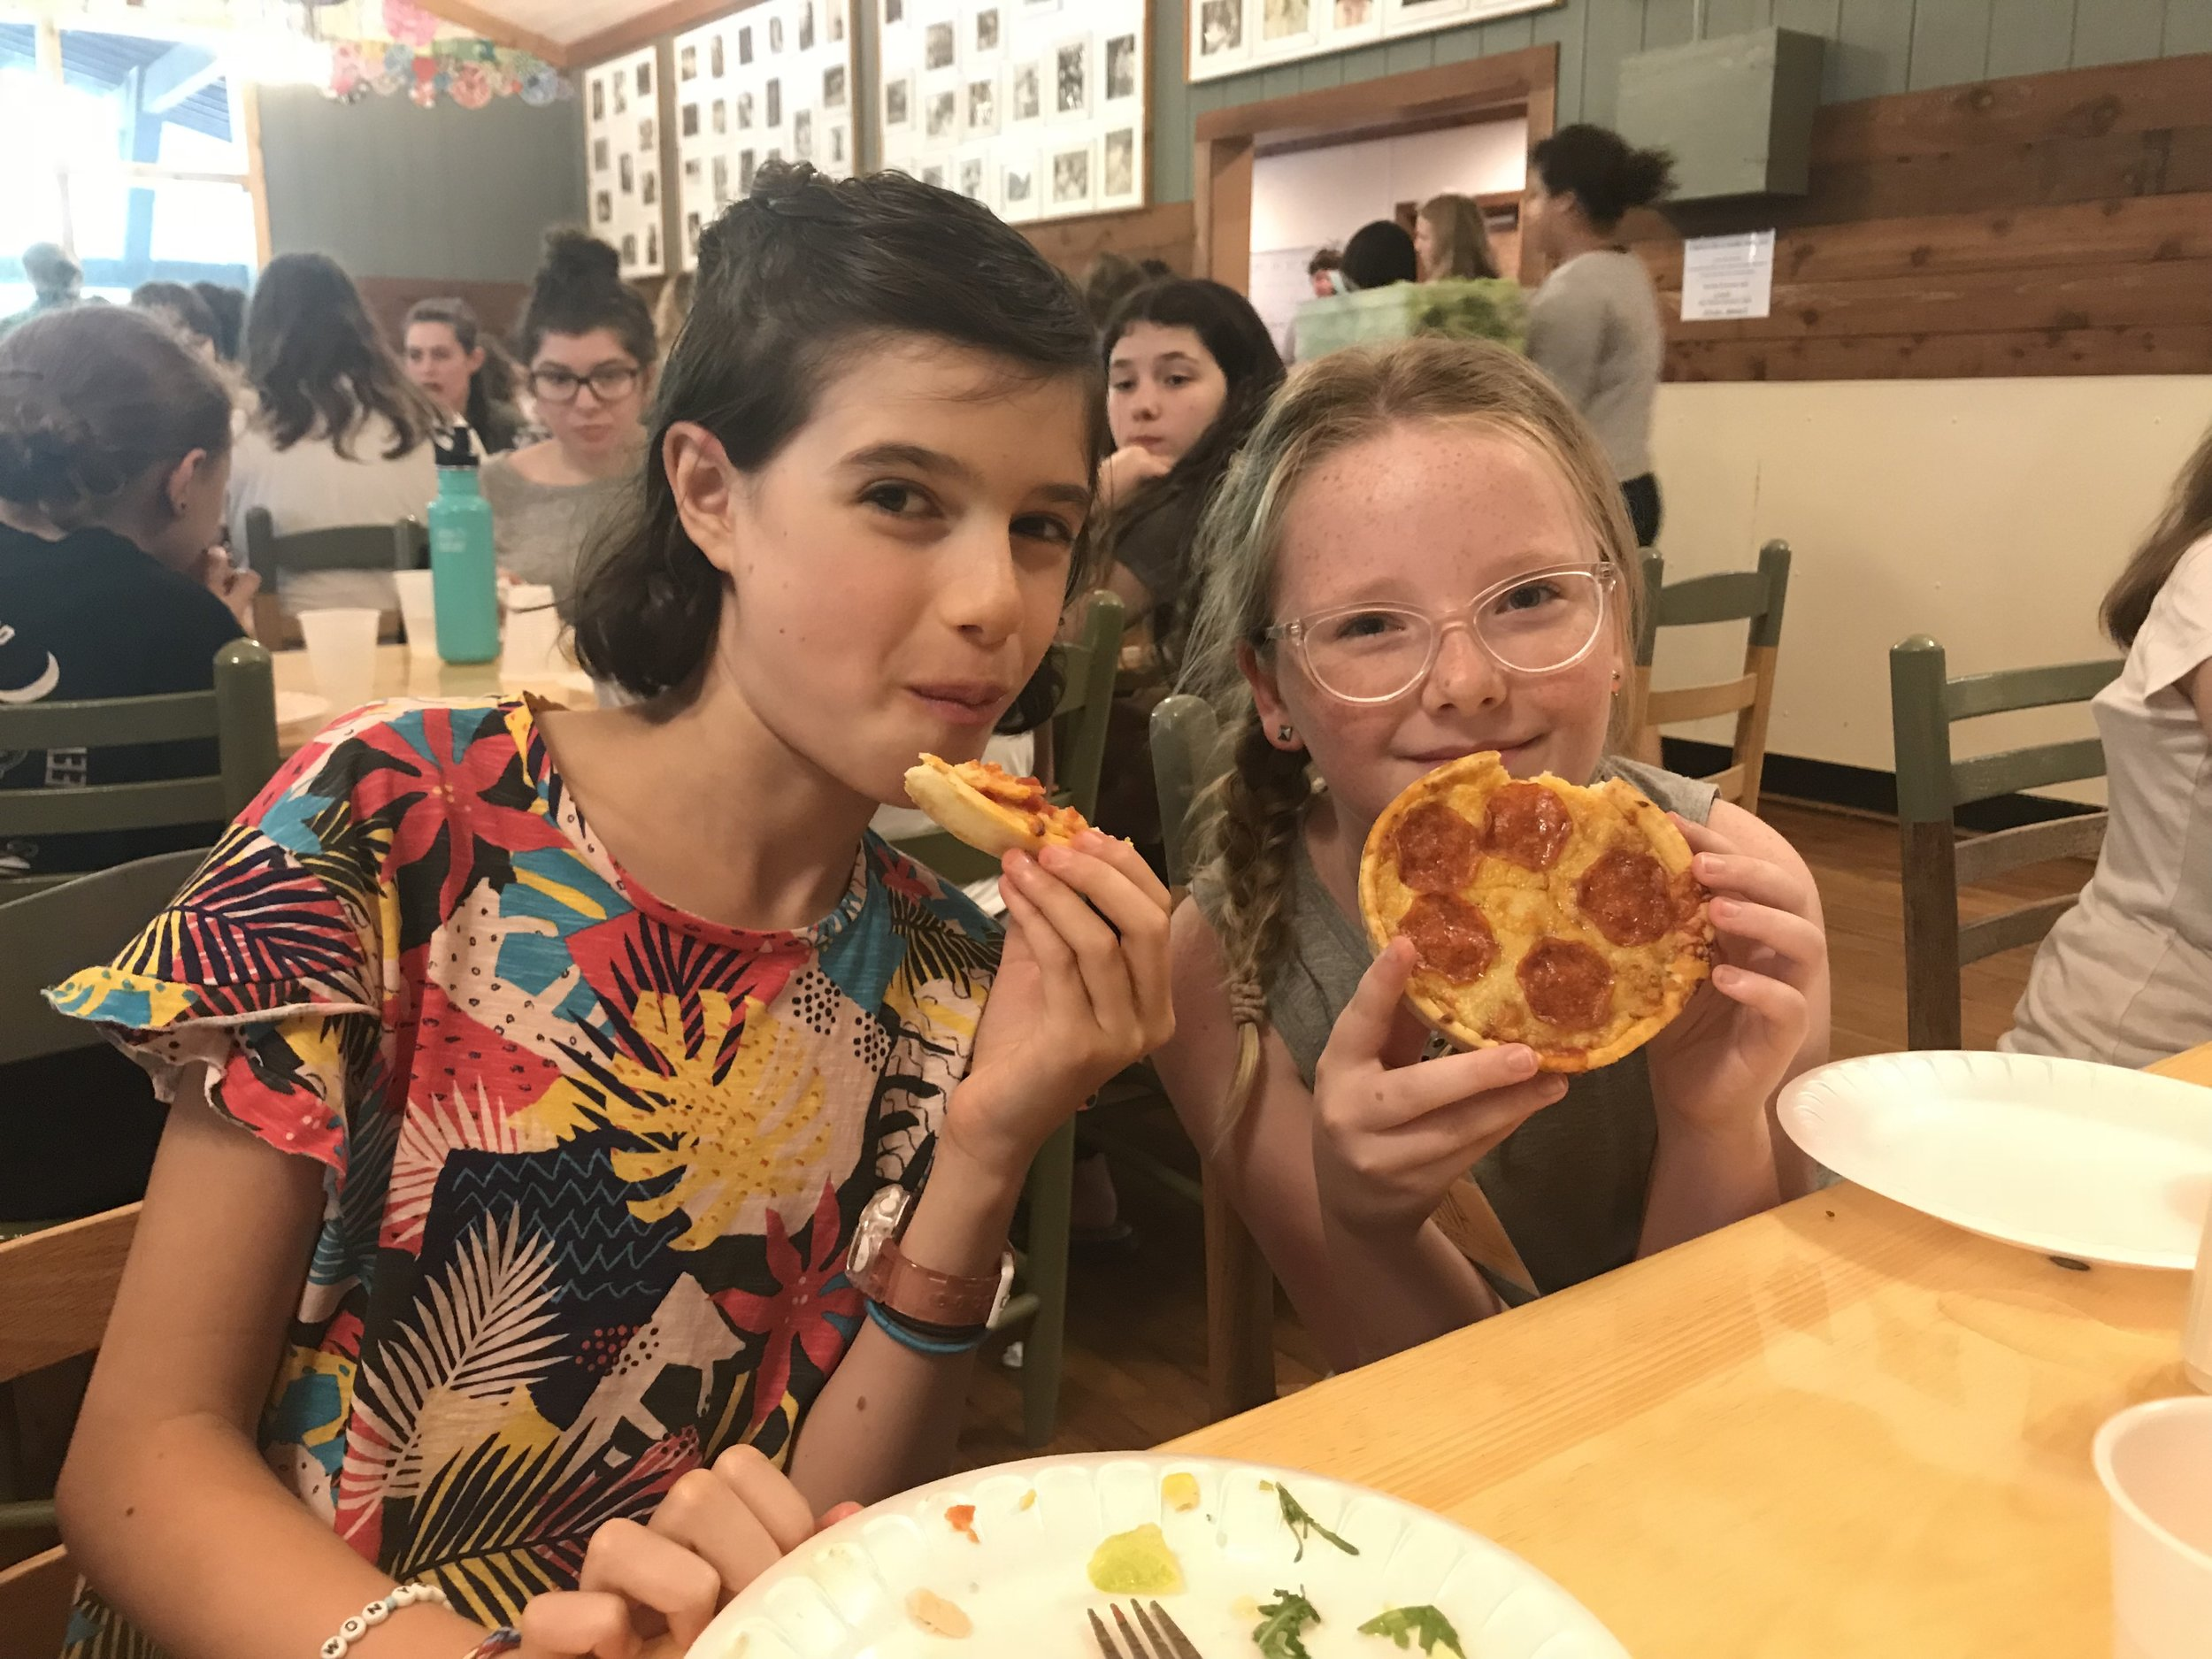 Everyone loves pizza day!